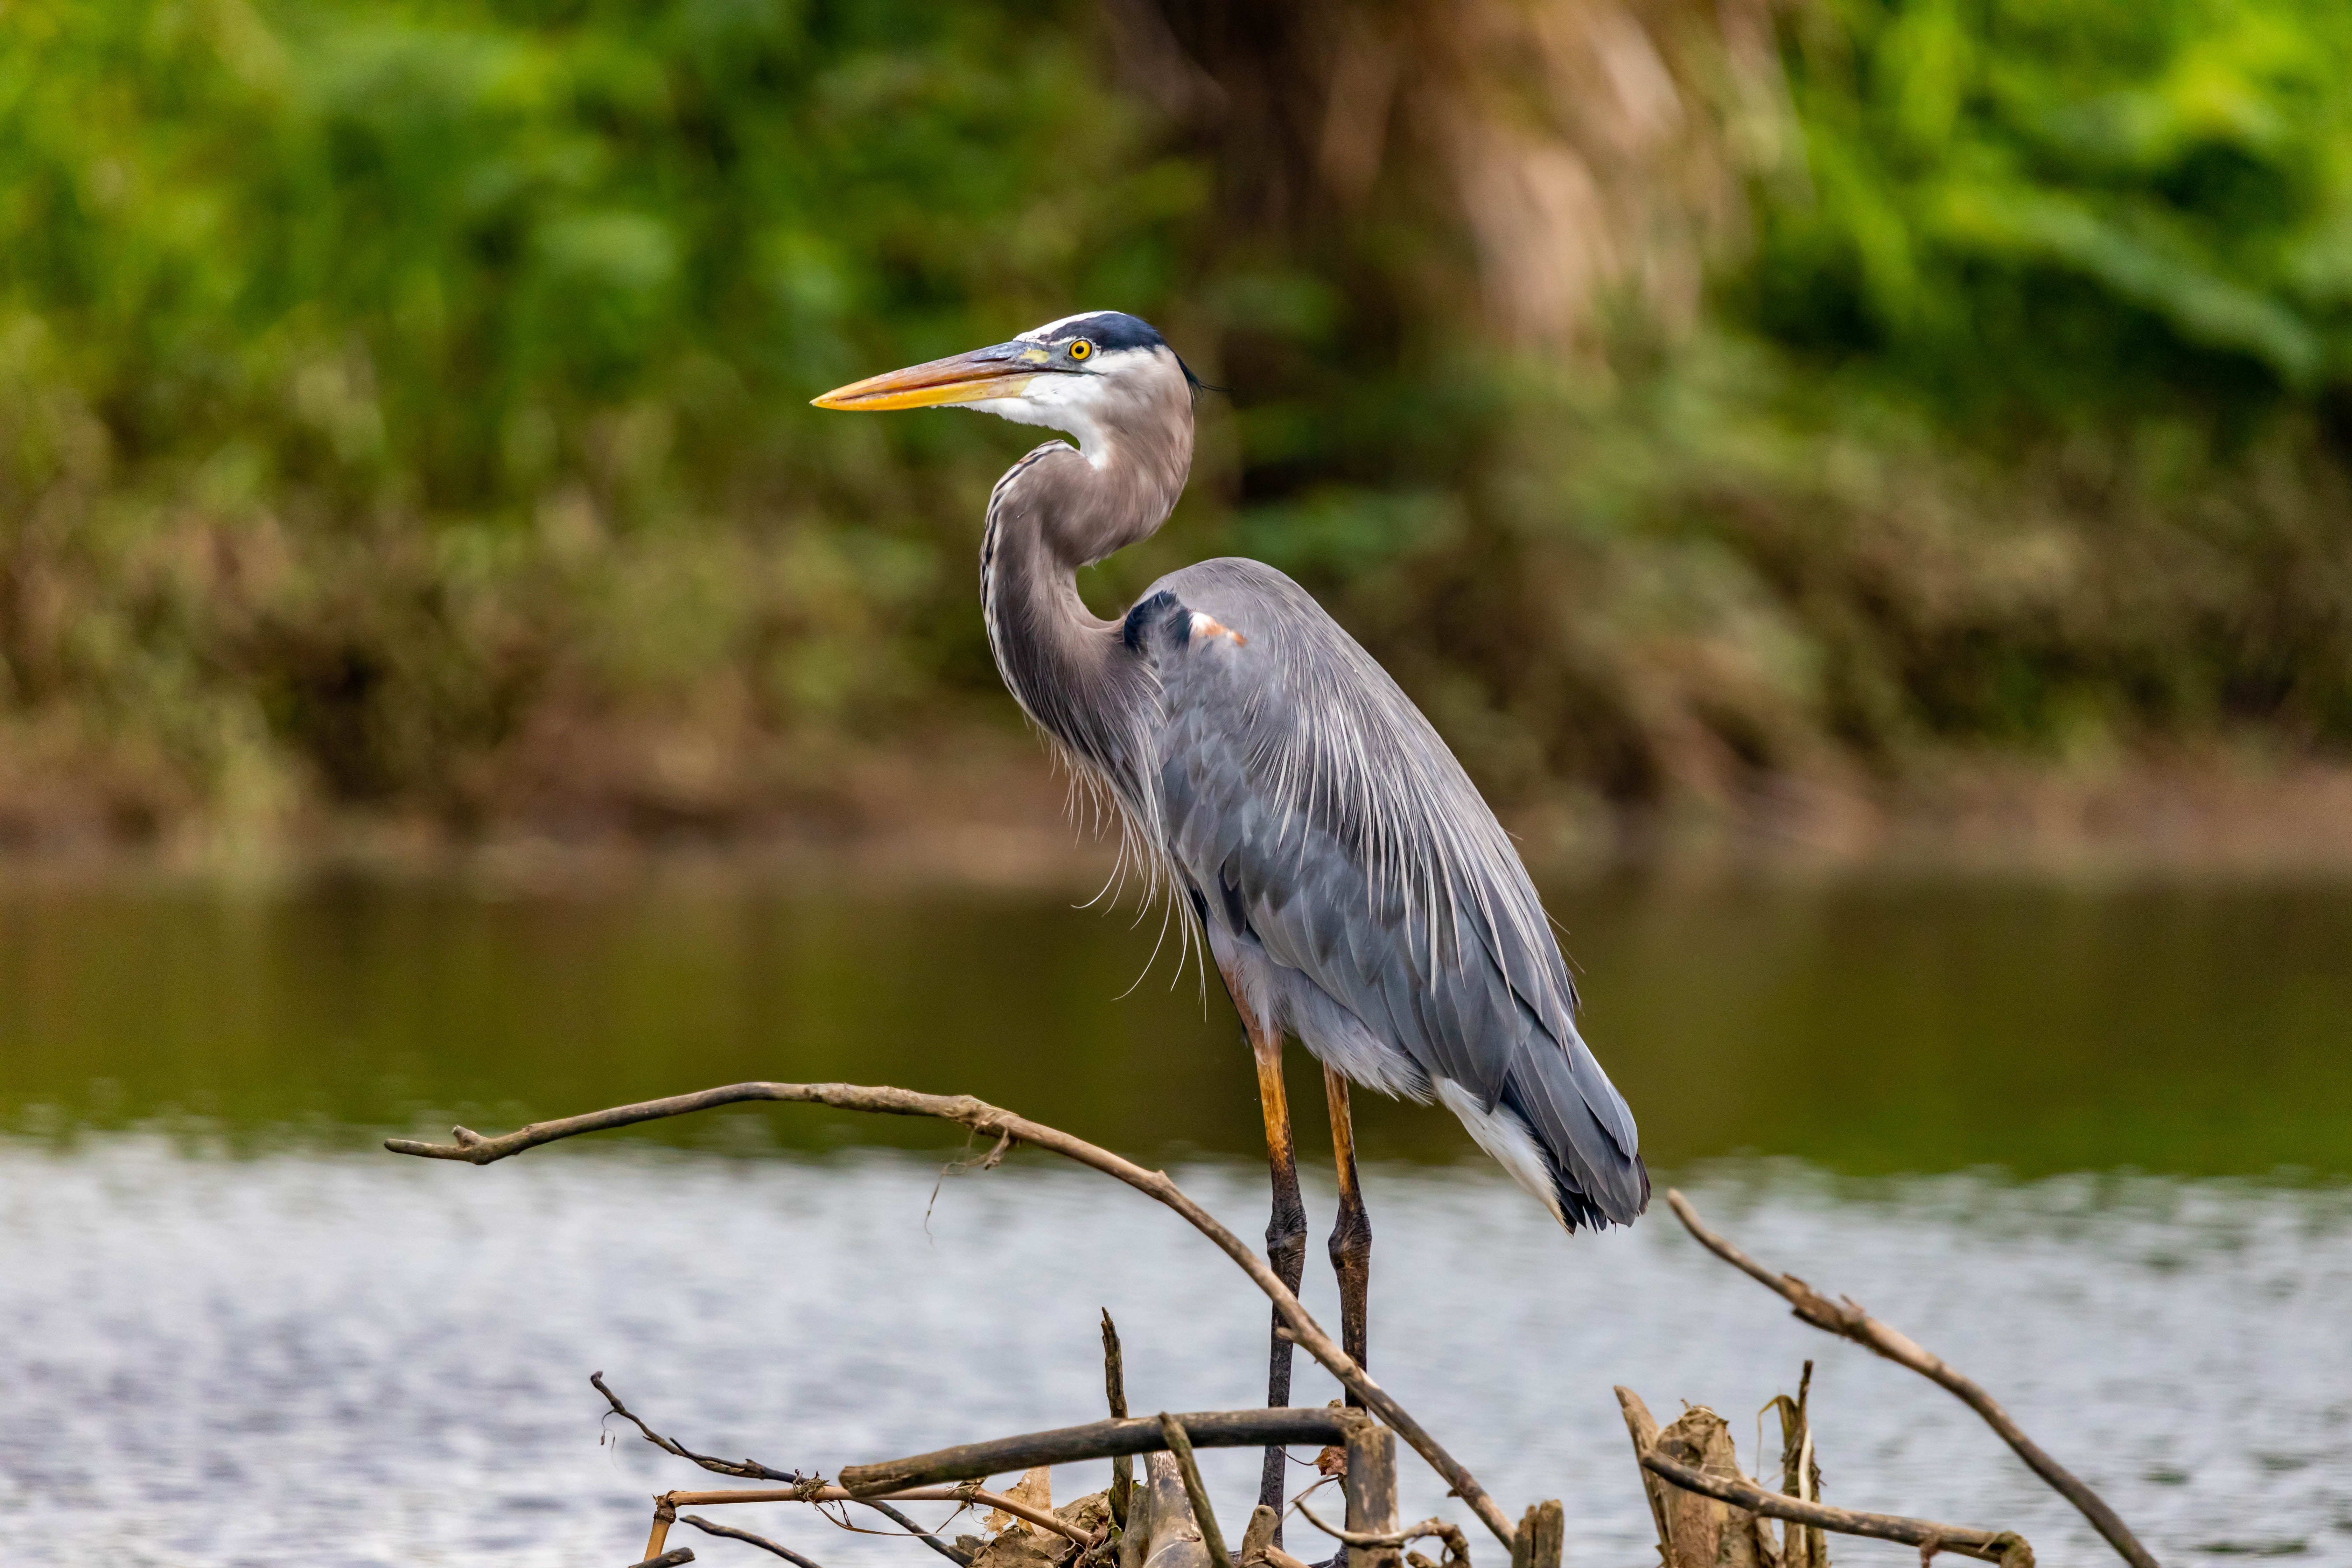 A heron perched on a stump. | Photo: Pexels